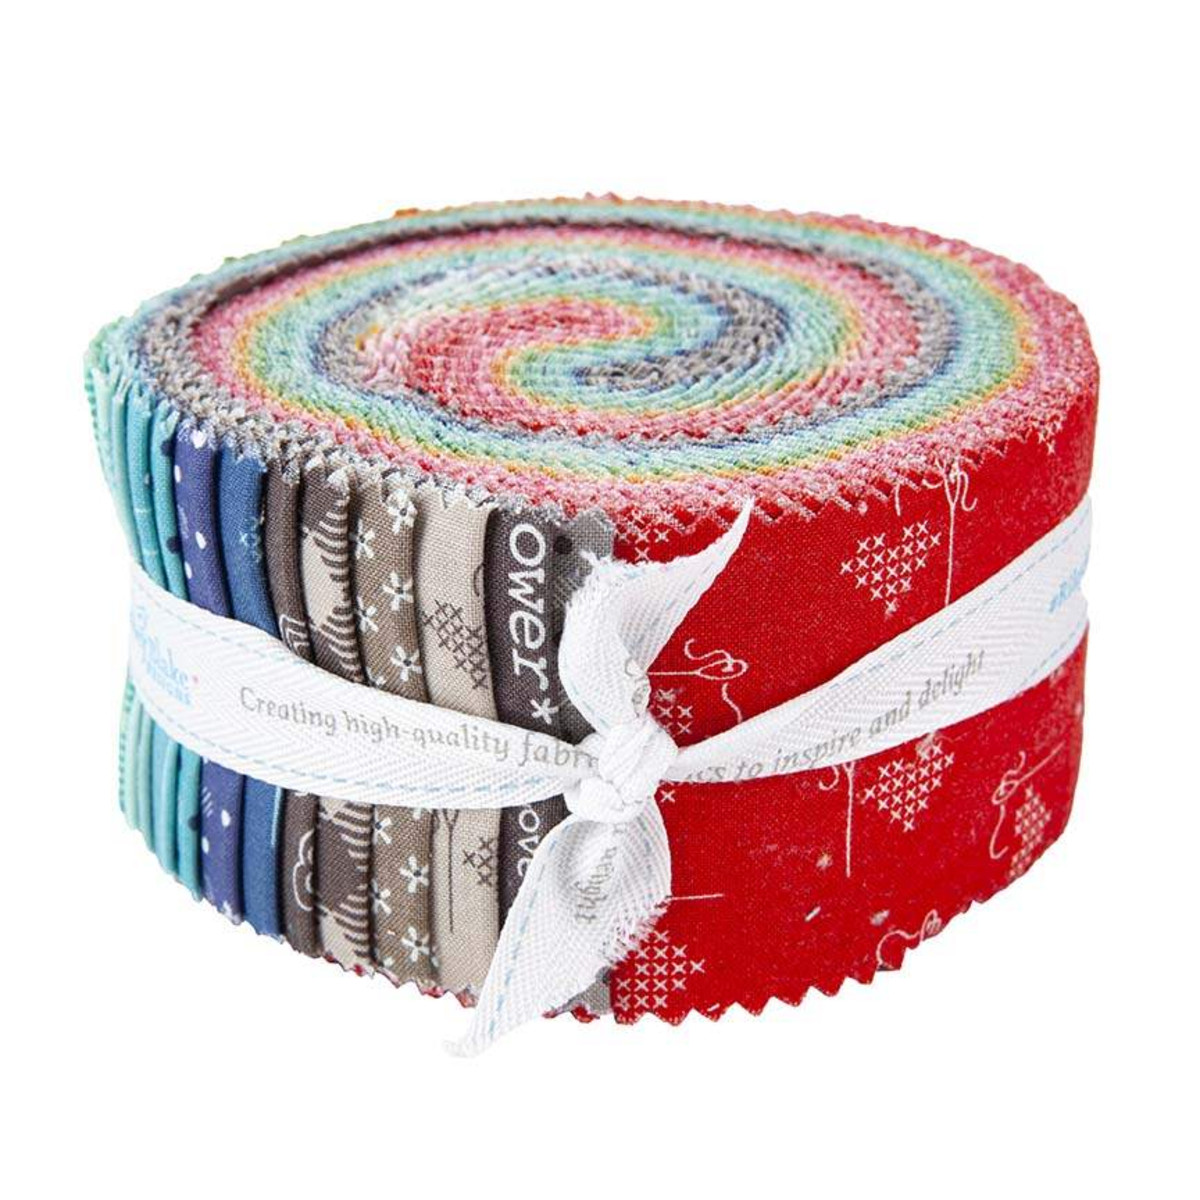 Riley Blake Jelly Roll - Bee Basics RED by Lori Holt